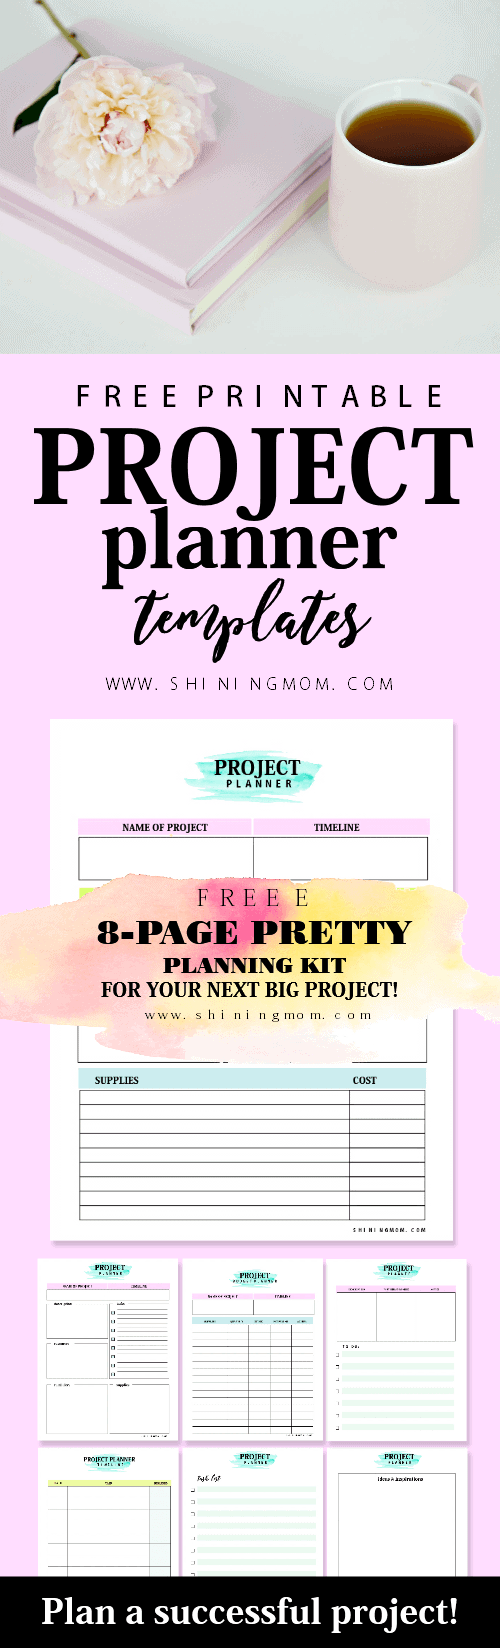 project-planner-printable-free